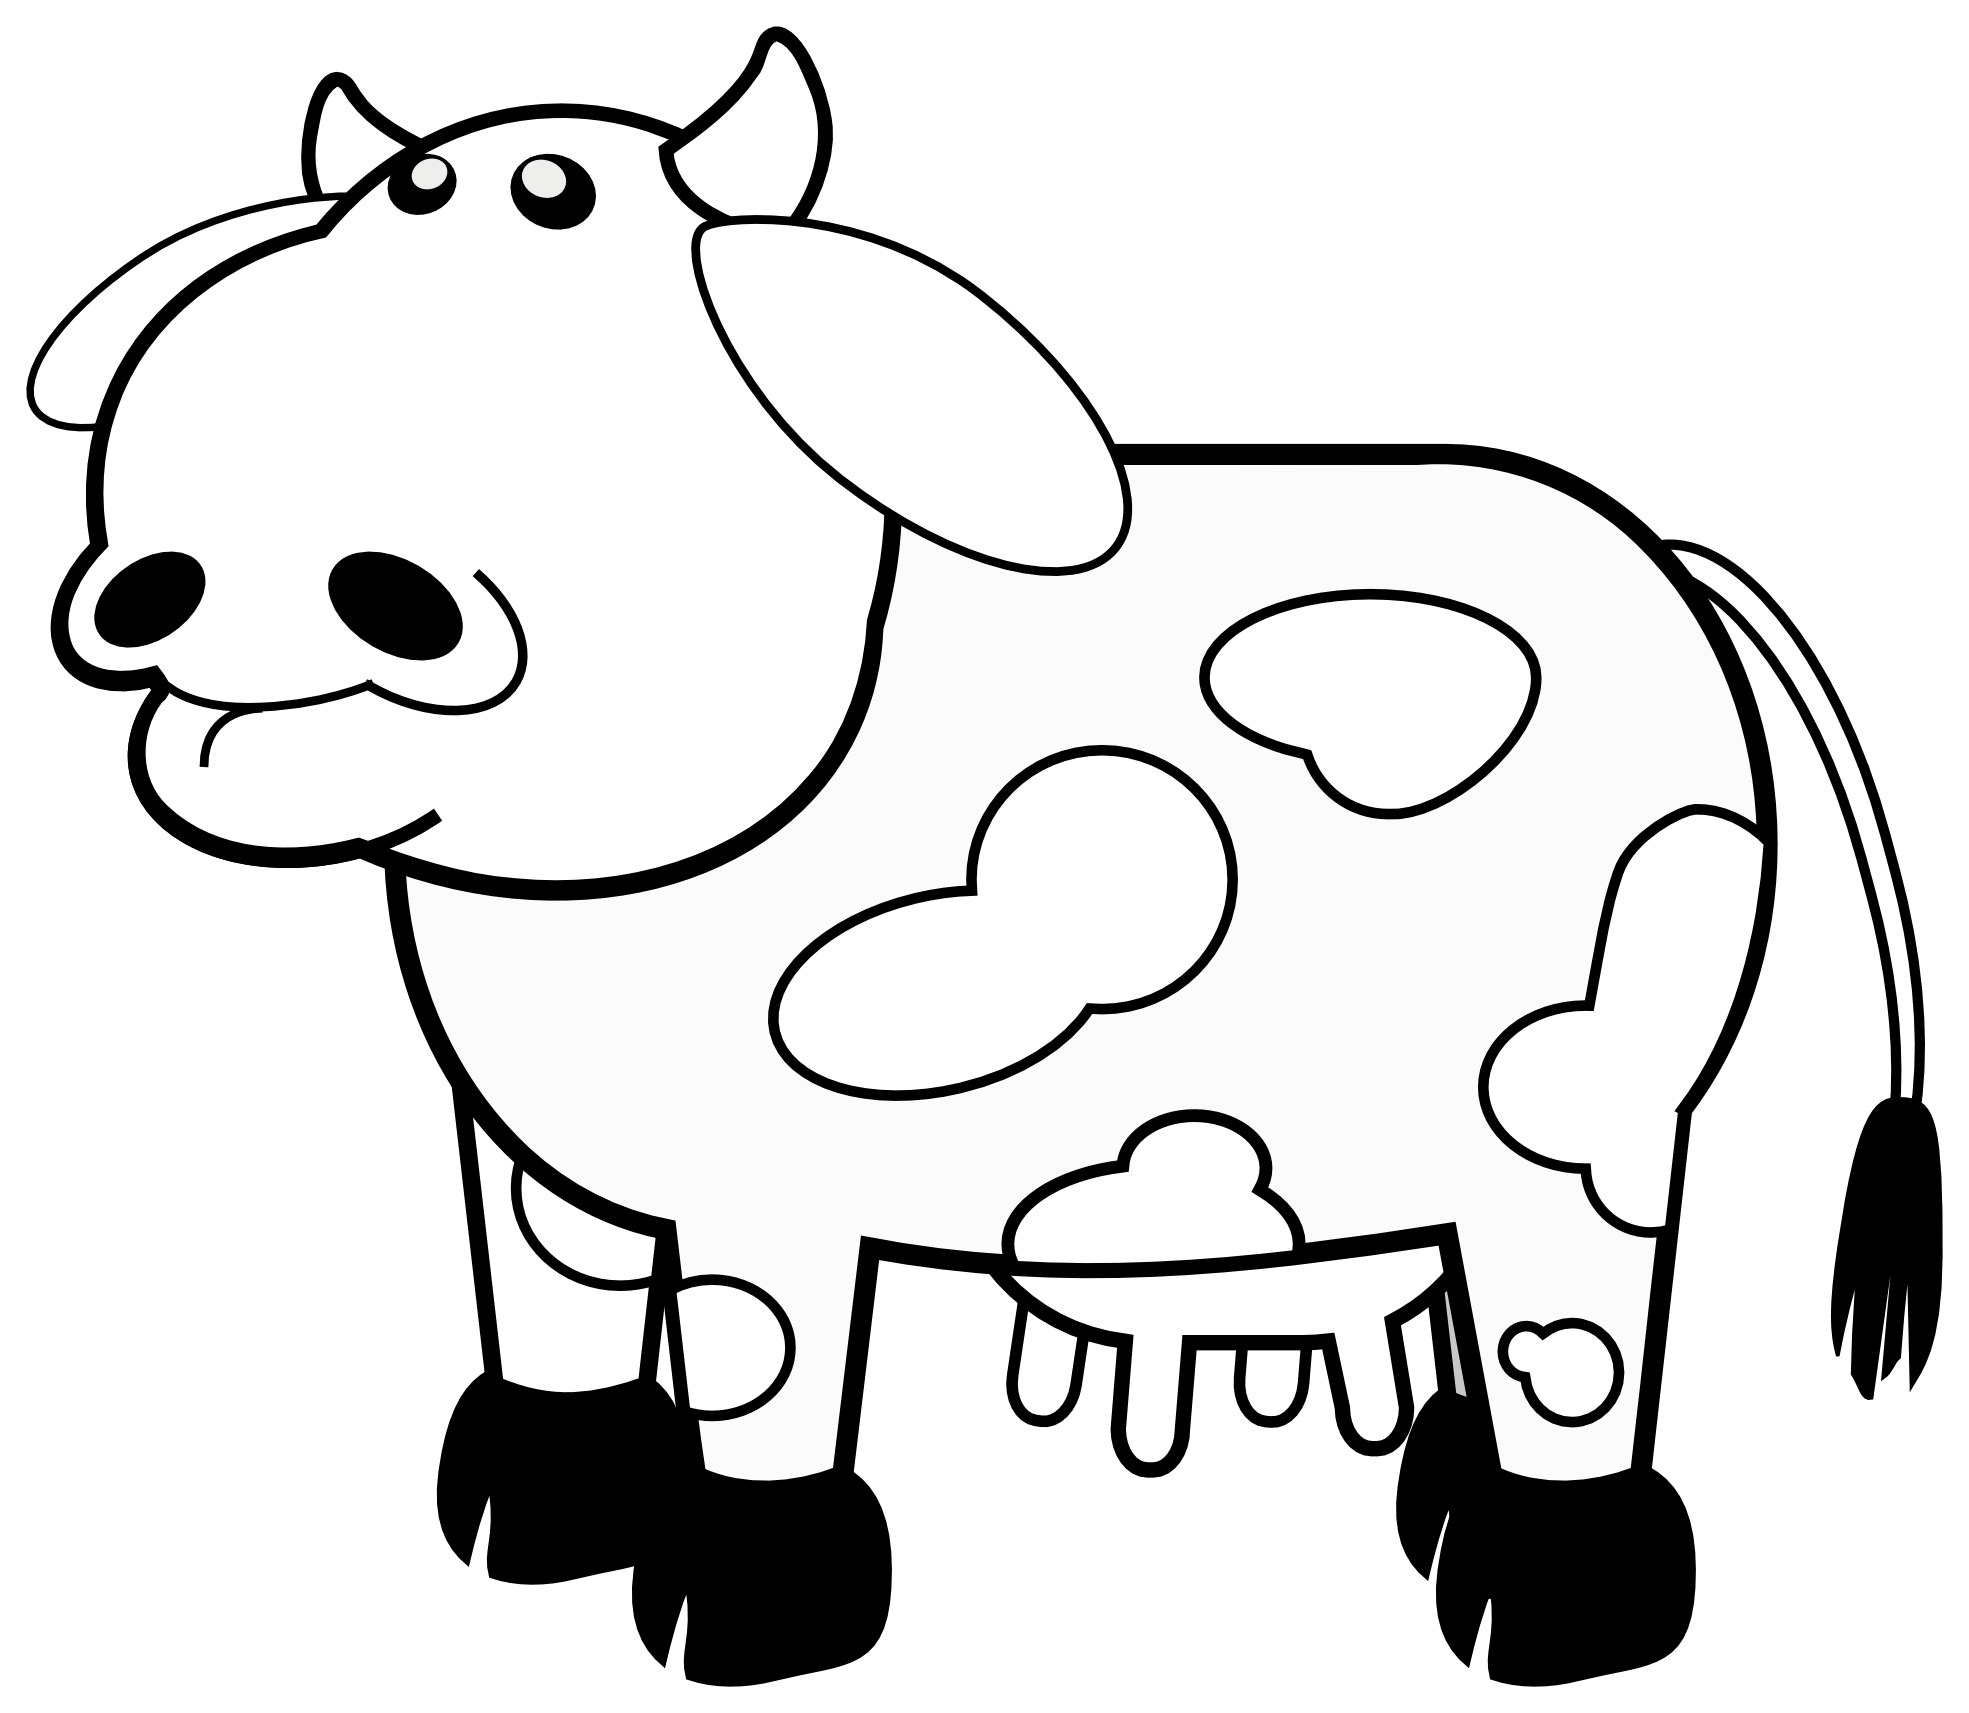 Free Black And White Cow Clipart